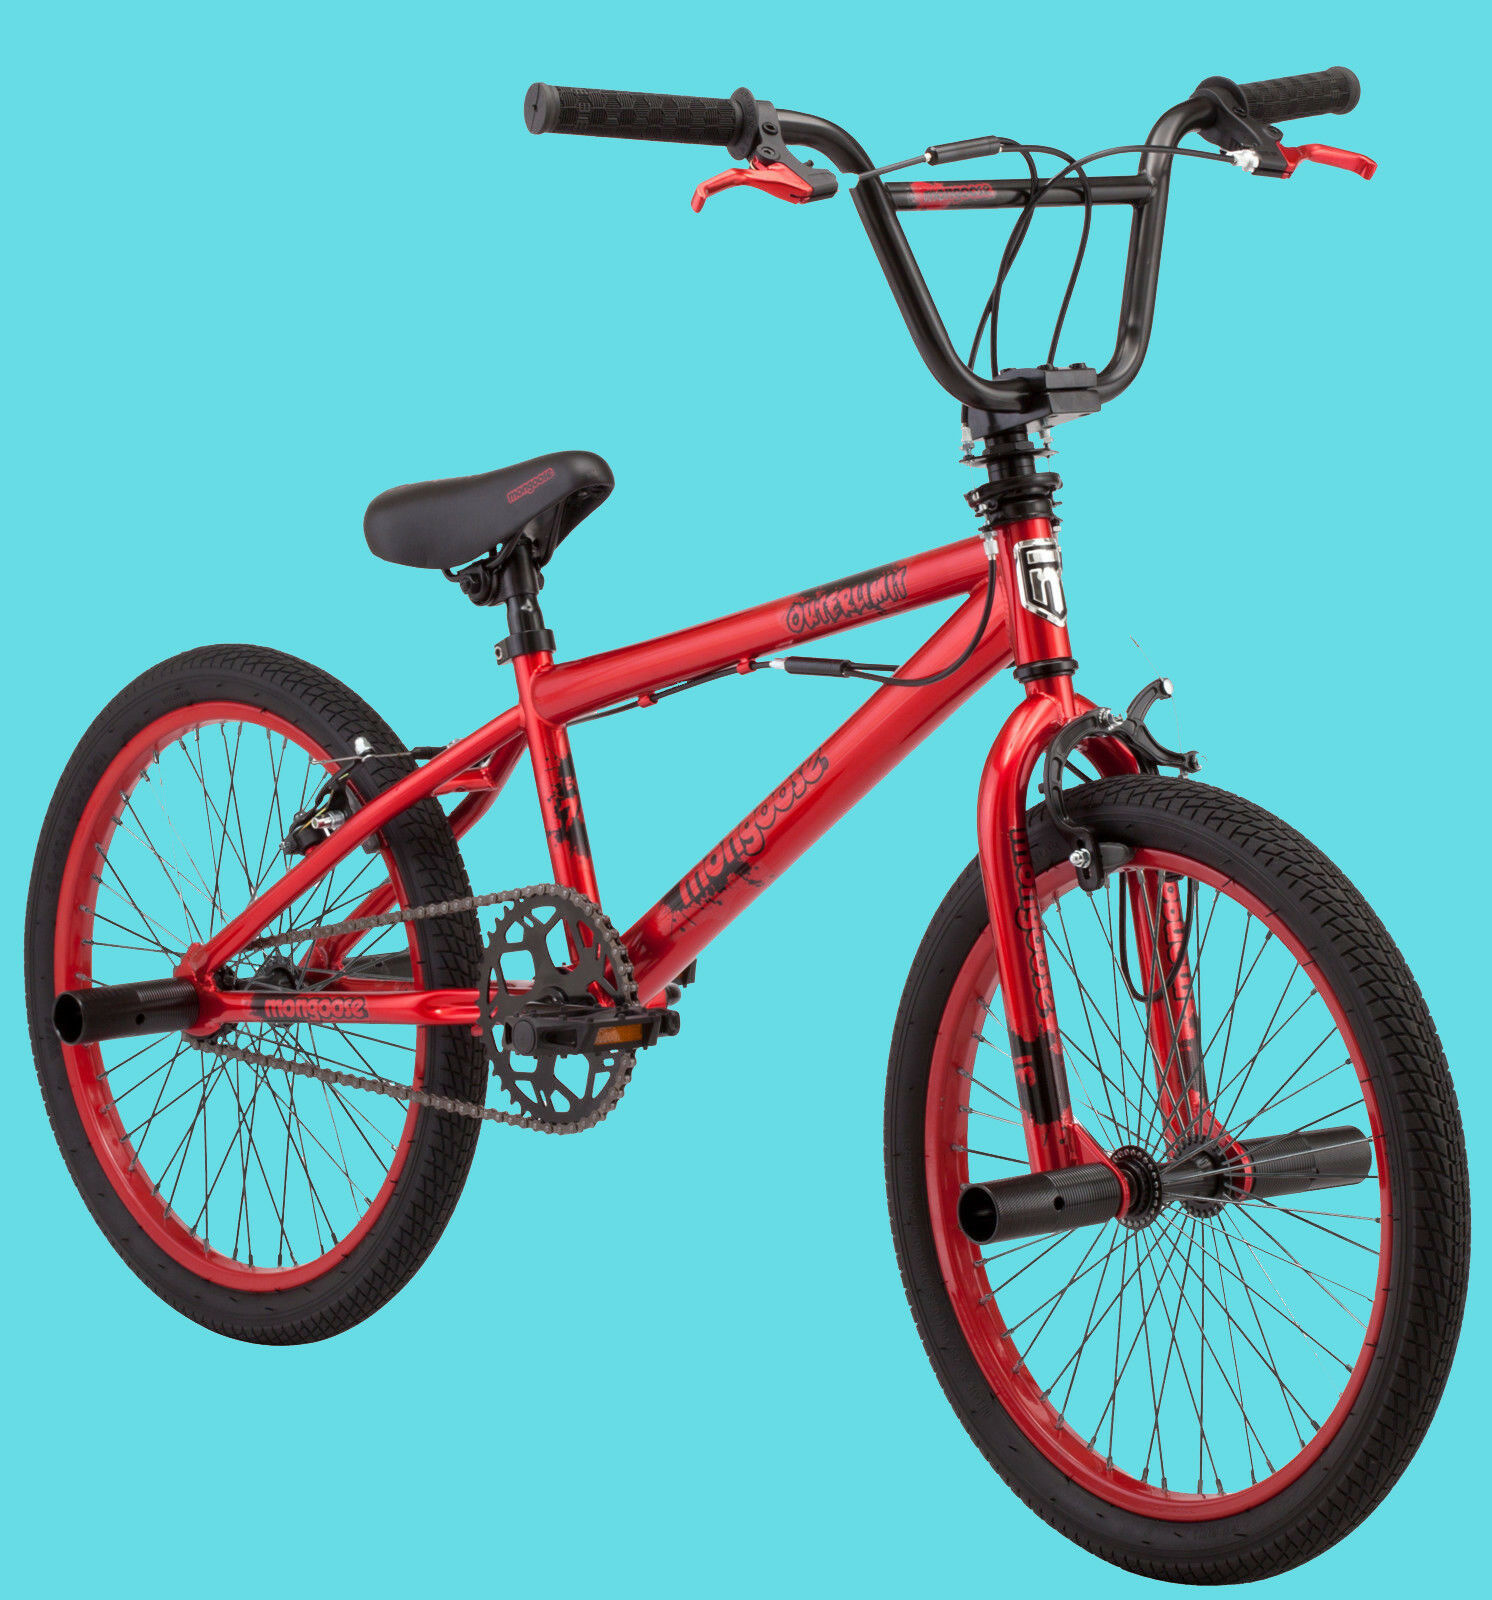 mongoose mountain bikes for sale